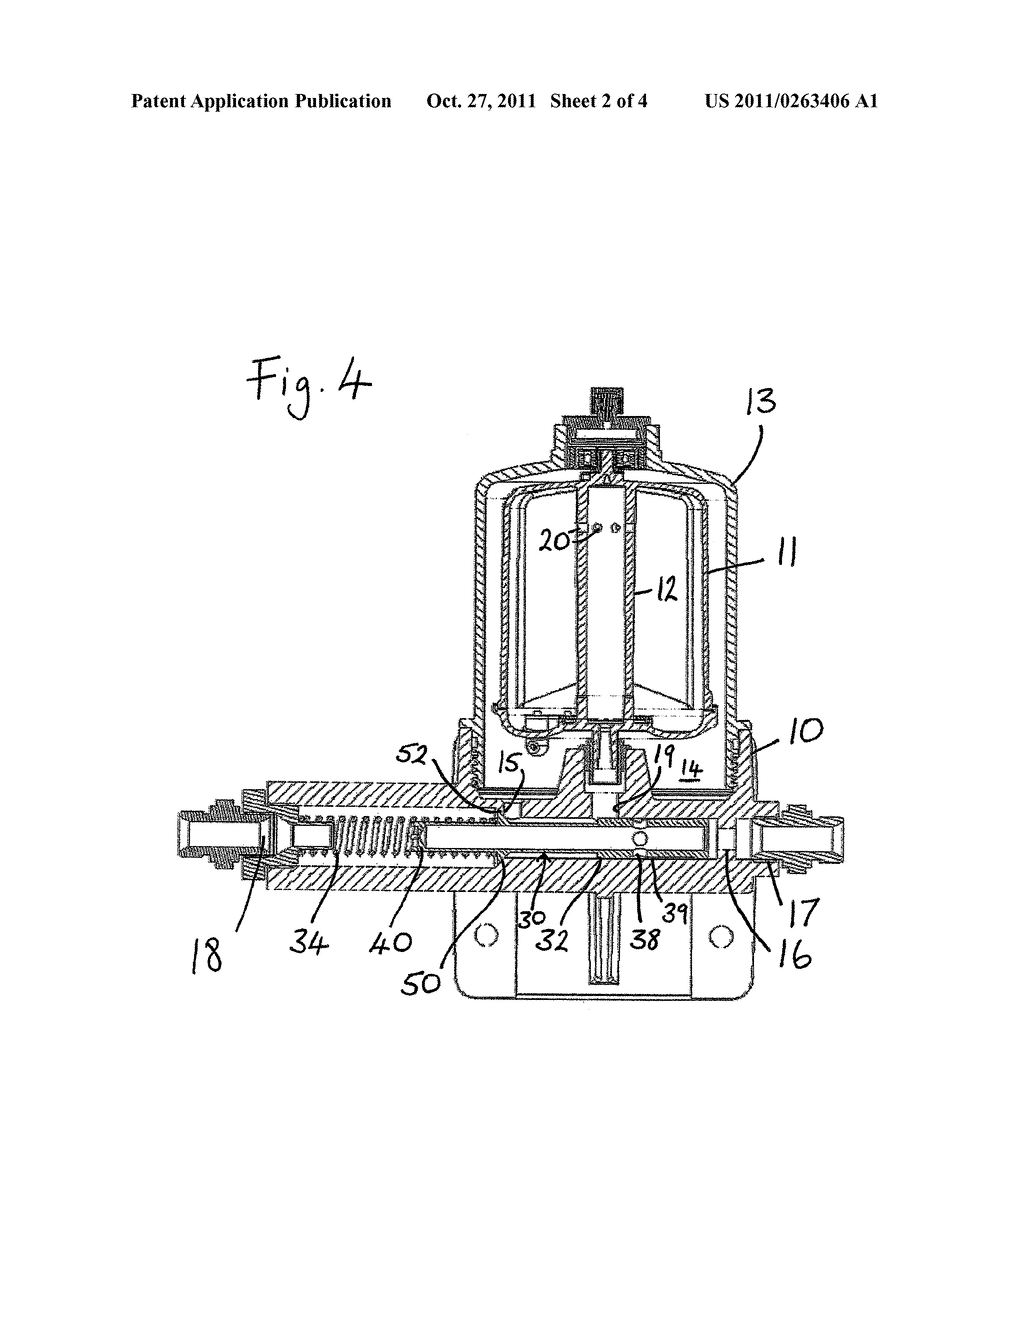 hight resolution of centrifugal separator with venturi arrangement diagram schematic and image 03